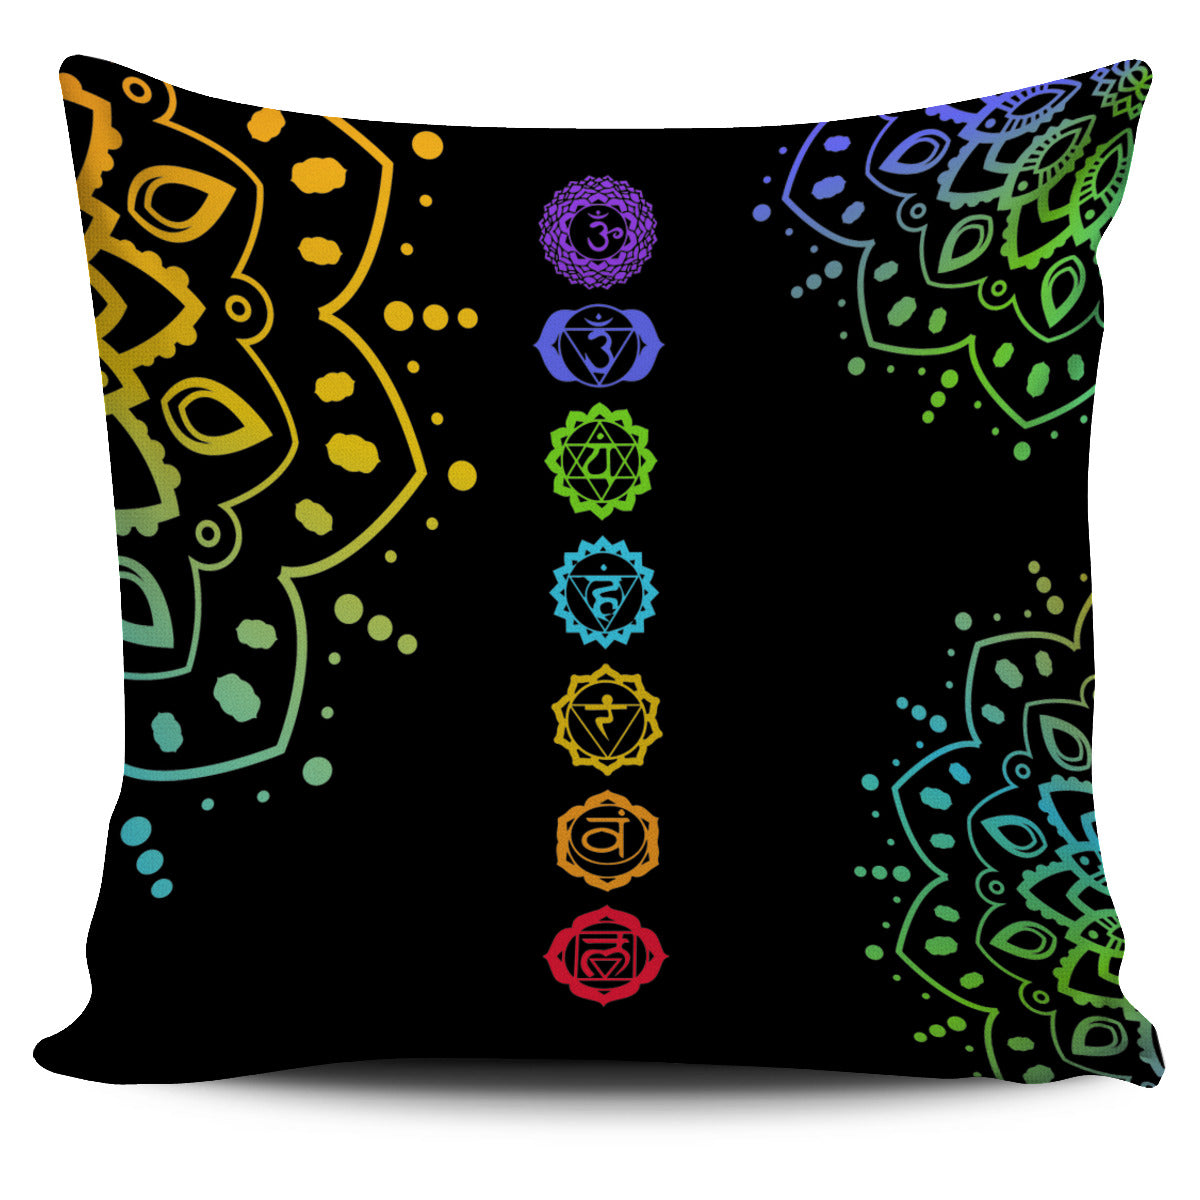 """Enchanting 7-Chakra Pillowcase"" FREE+SHIPPING SPECIAL!"